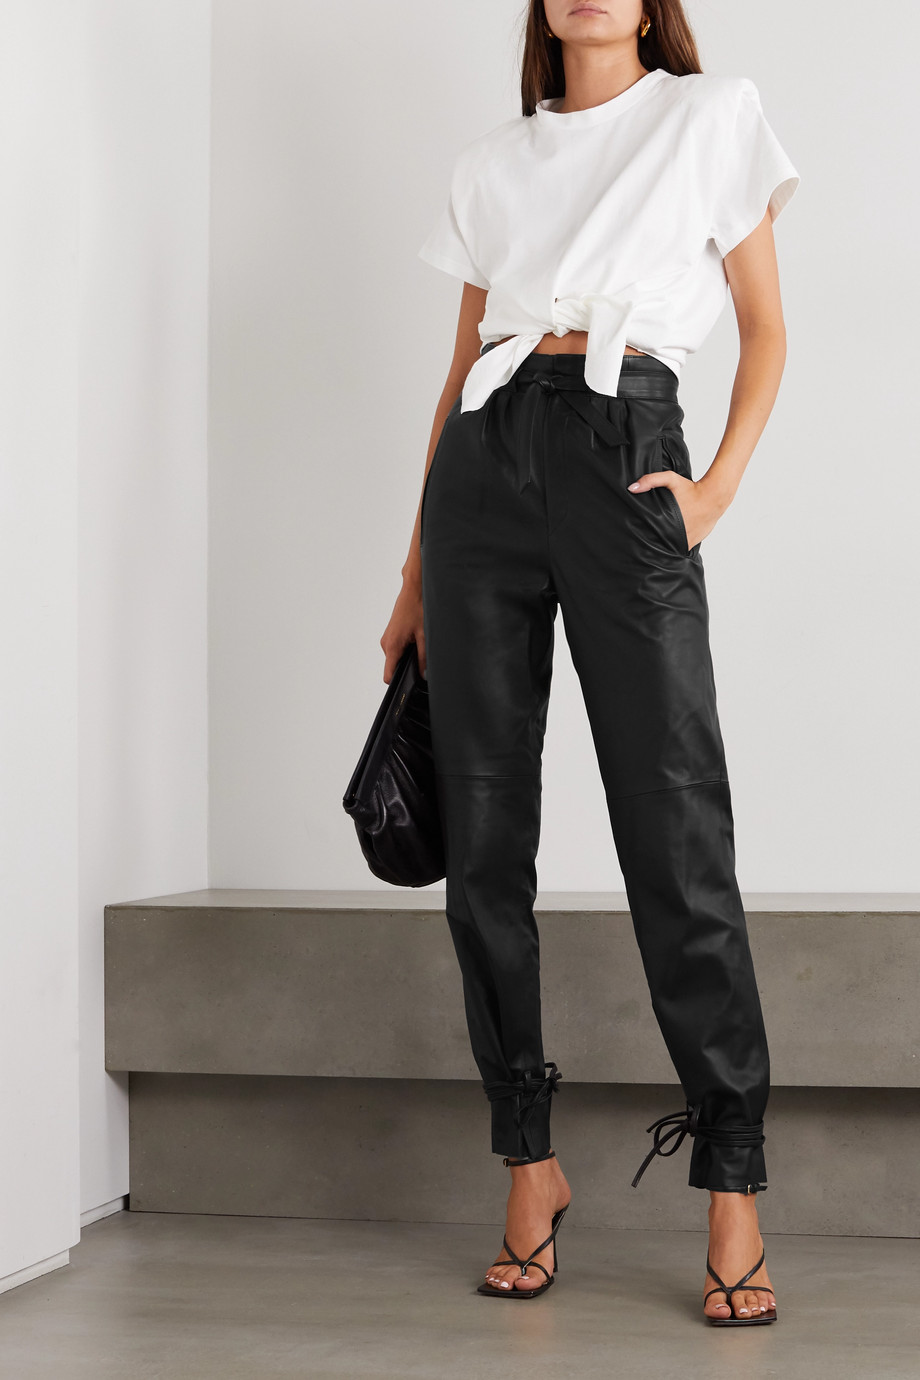 Isabel Marant Duardo tie-detailed leather tapered pants